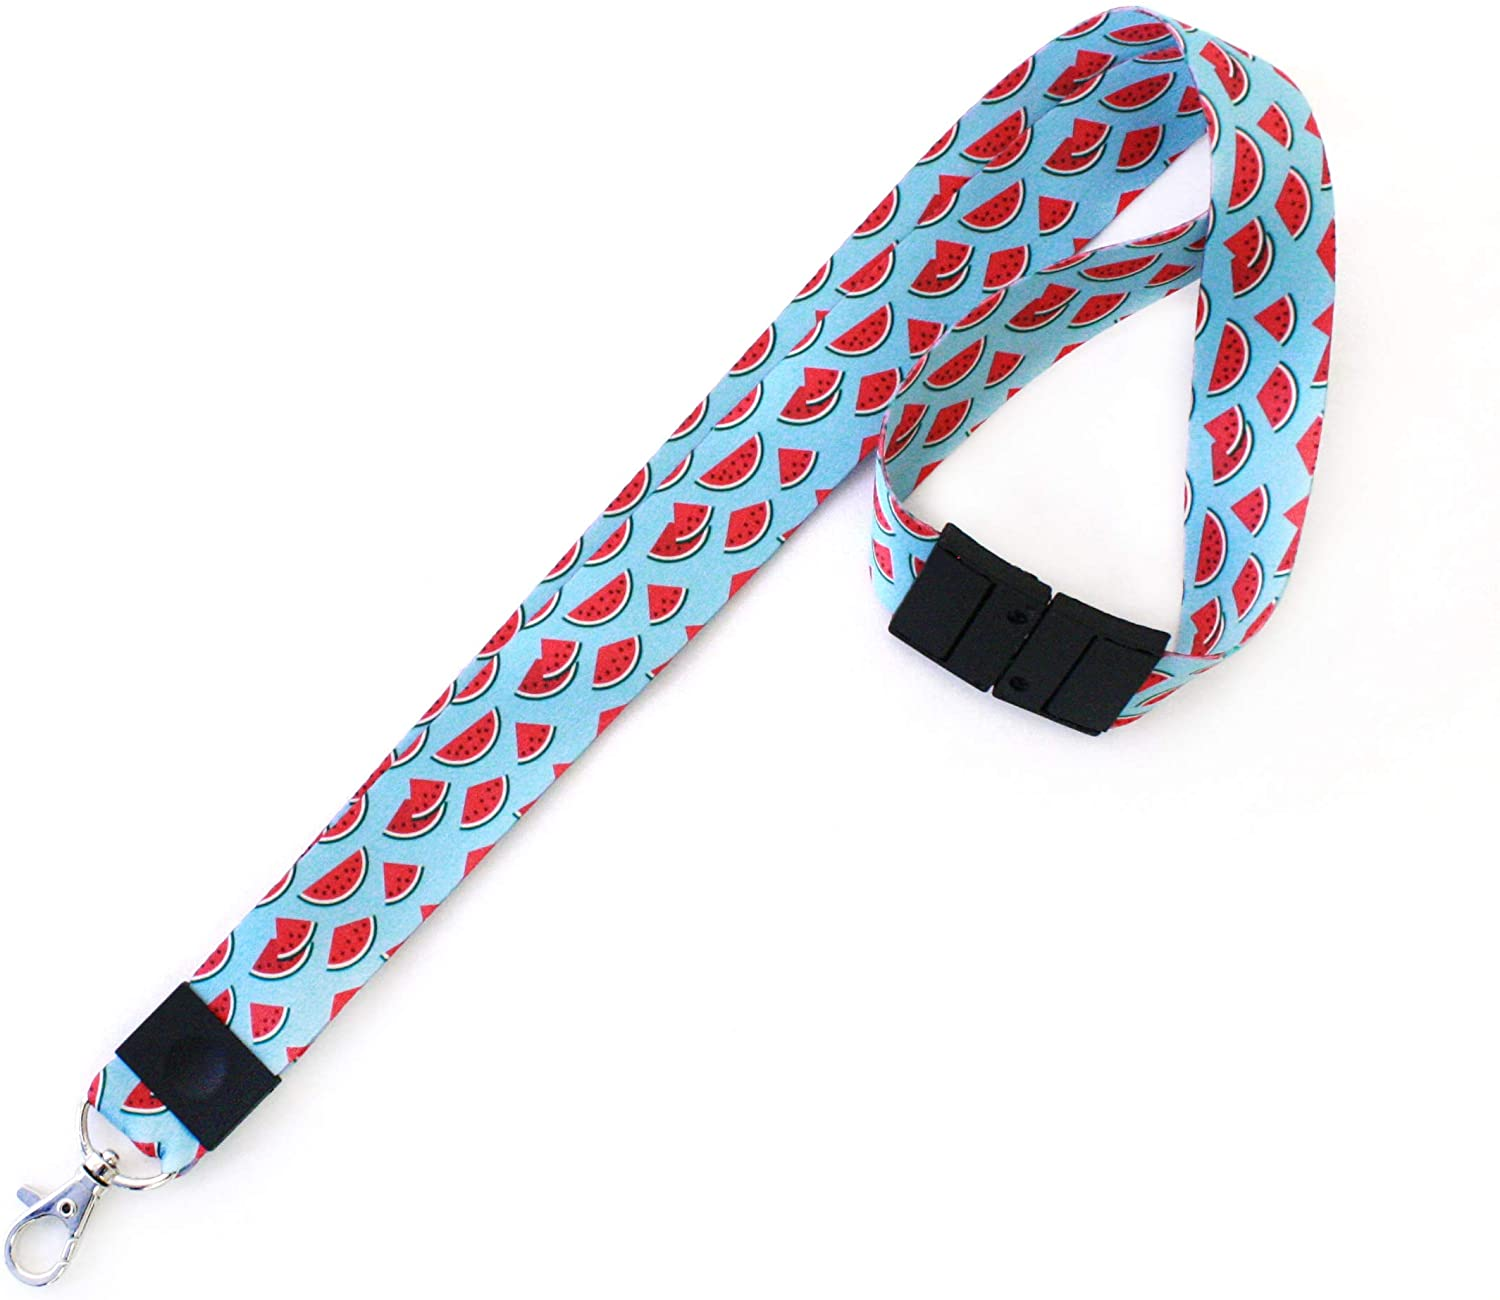 idshop Lanyard for Men and Women-Hold Your Keys and Badges with Style- Soft Fabric